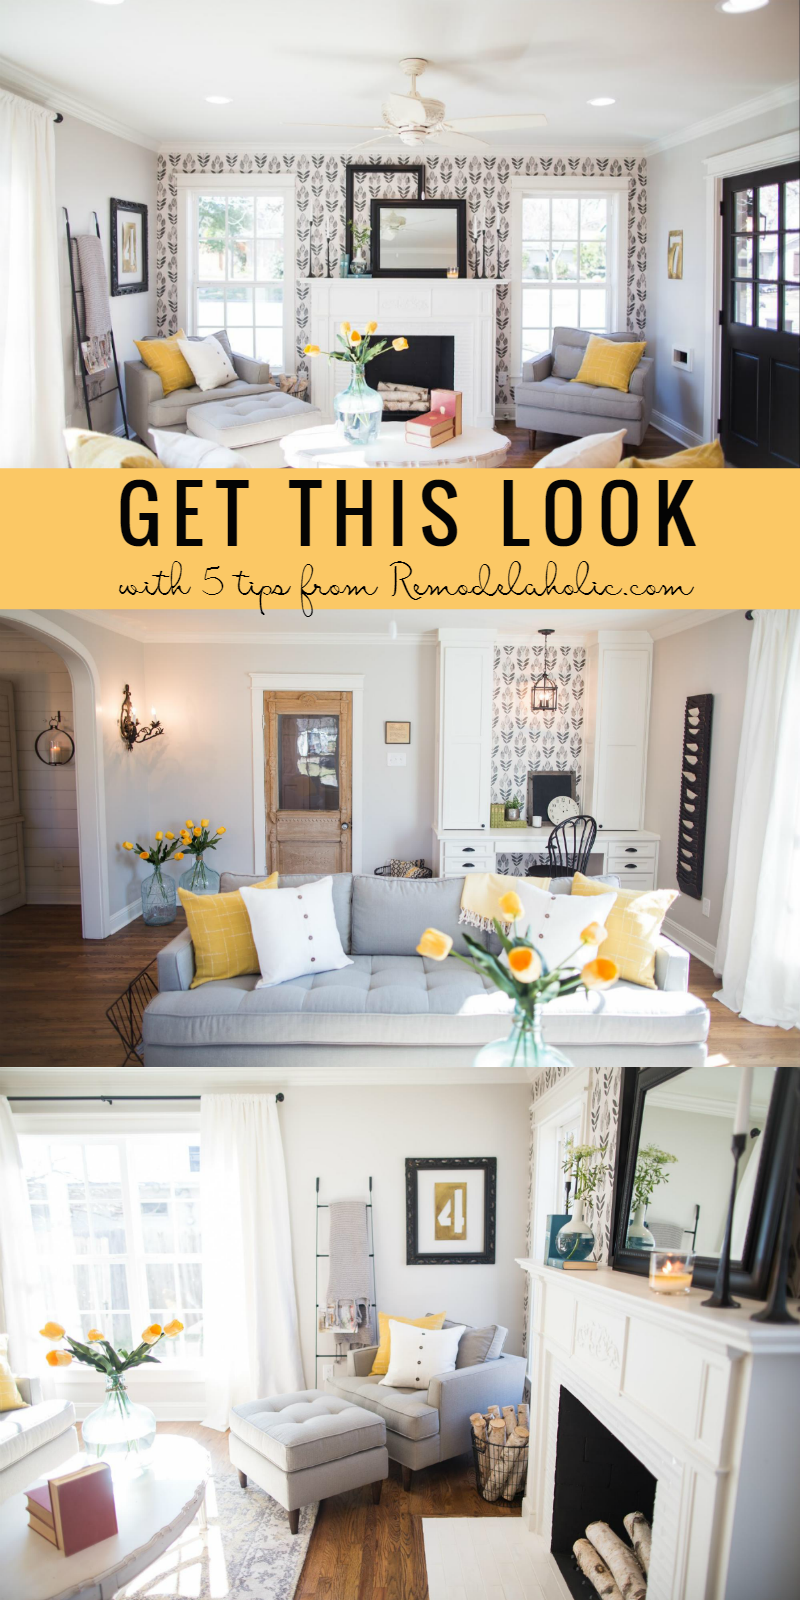 remodelaholic | get this look: contemporary farmhouse living room